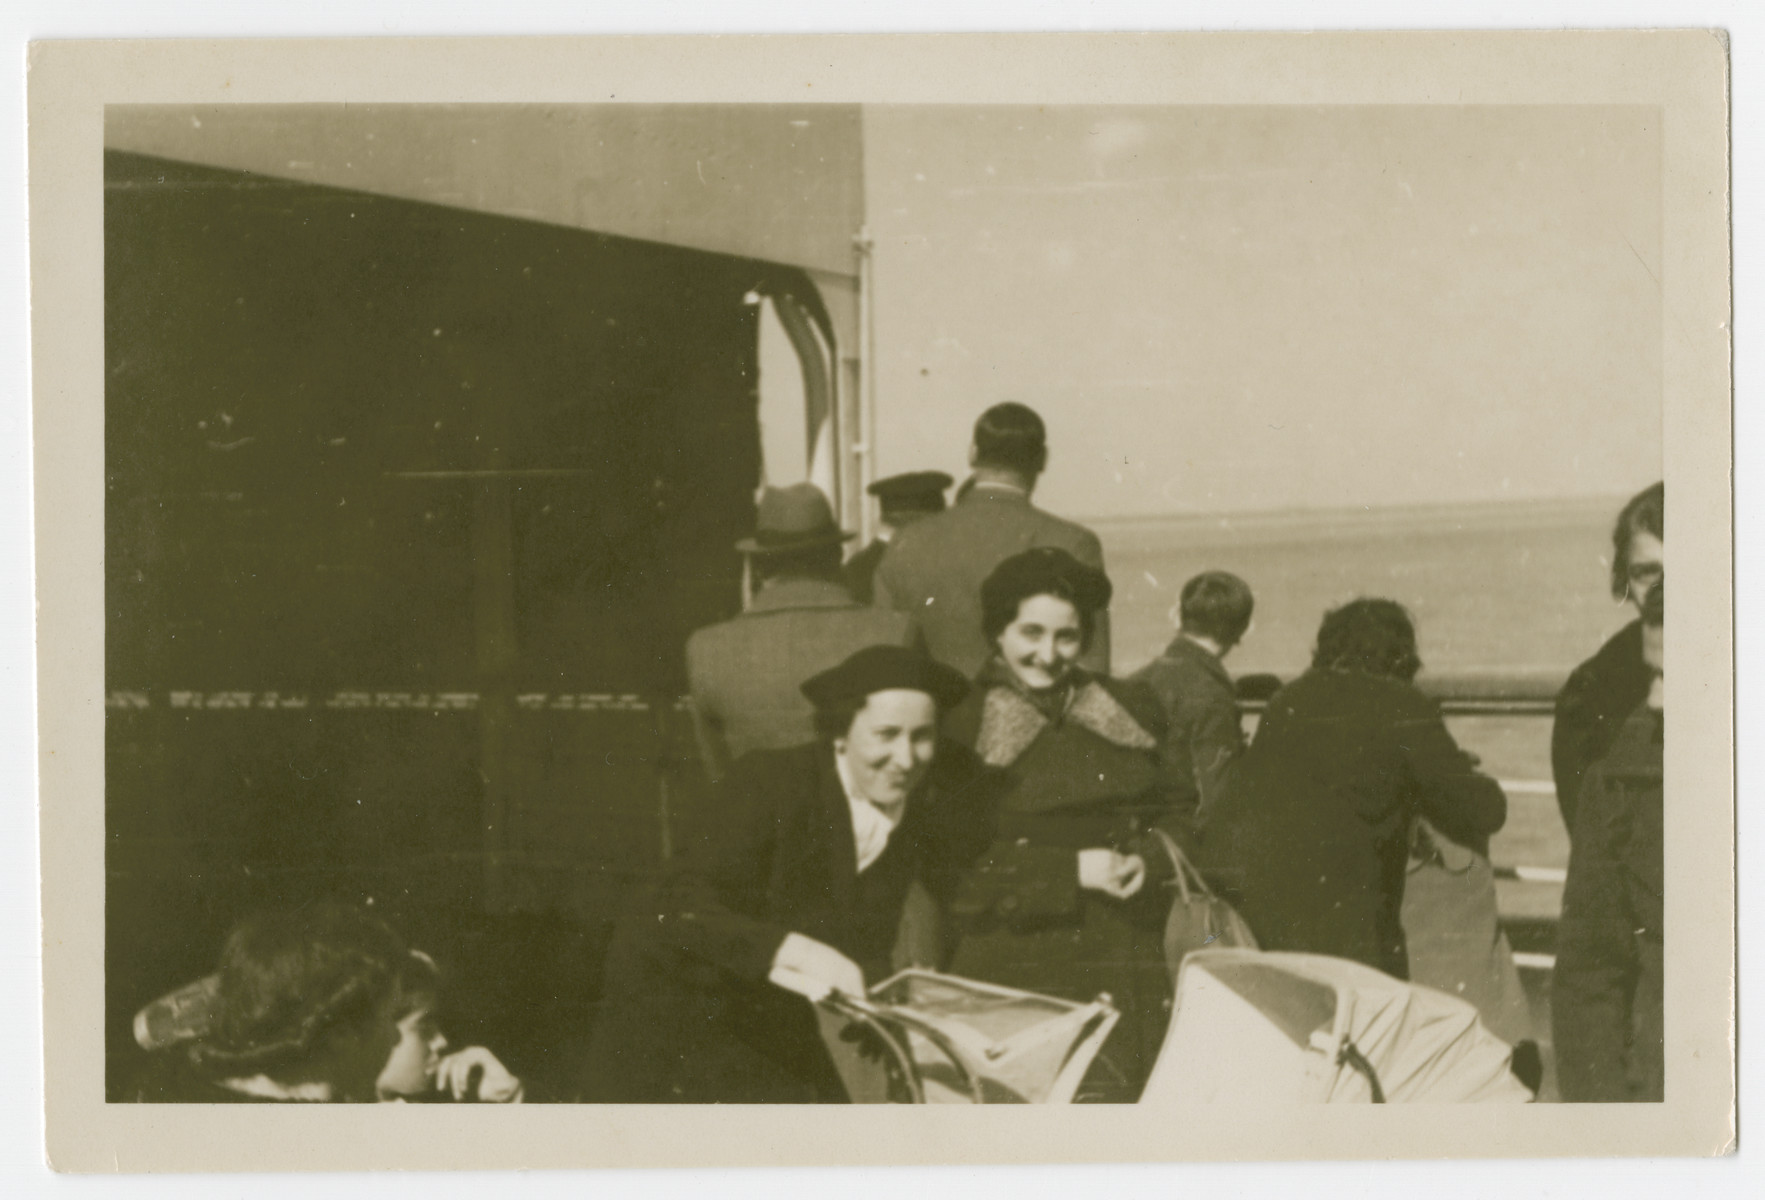 Gretel Kleeblatt (right) and another female passenger pose on the deck of the SS Manhattan while fleeing Germany for the United States.